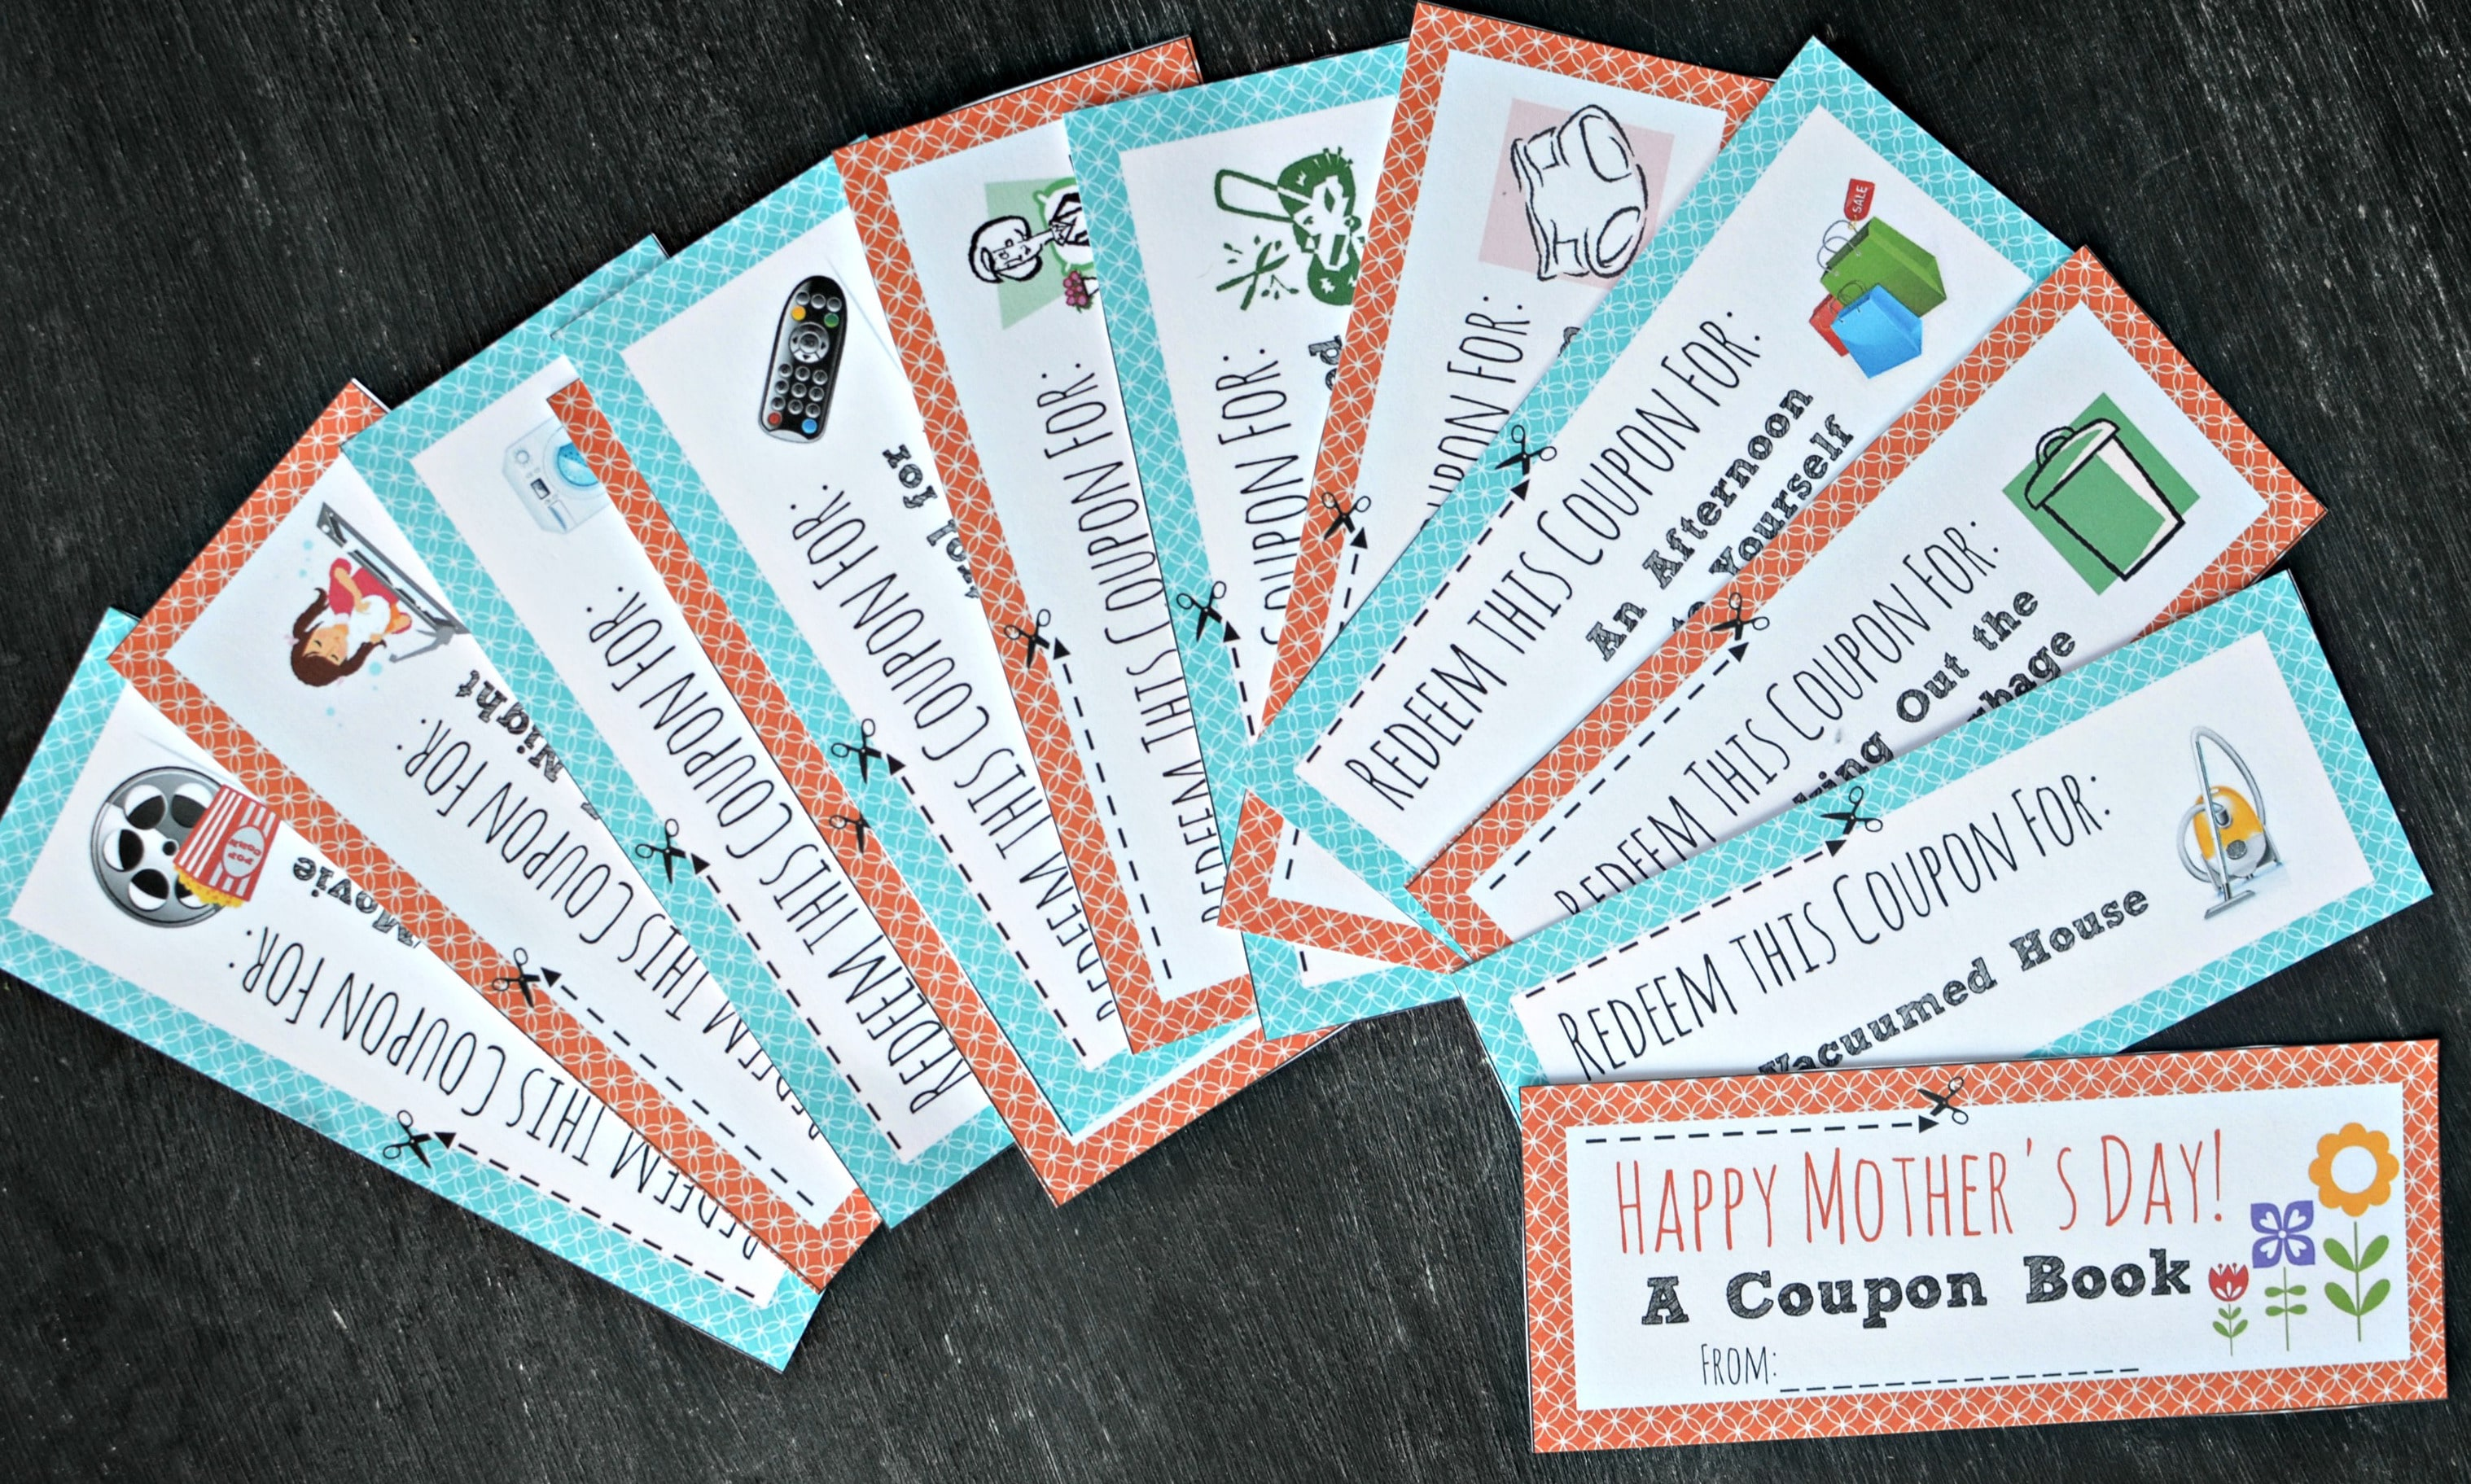 mother's day gift - coupon